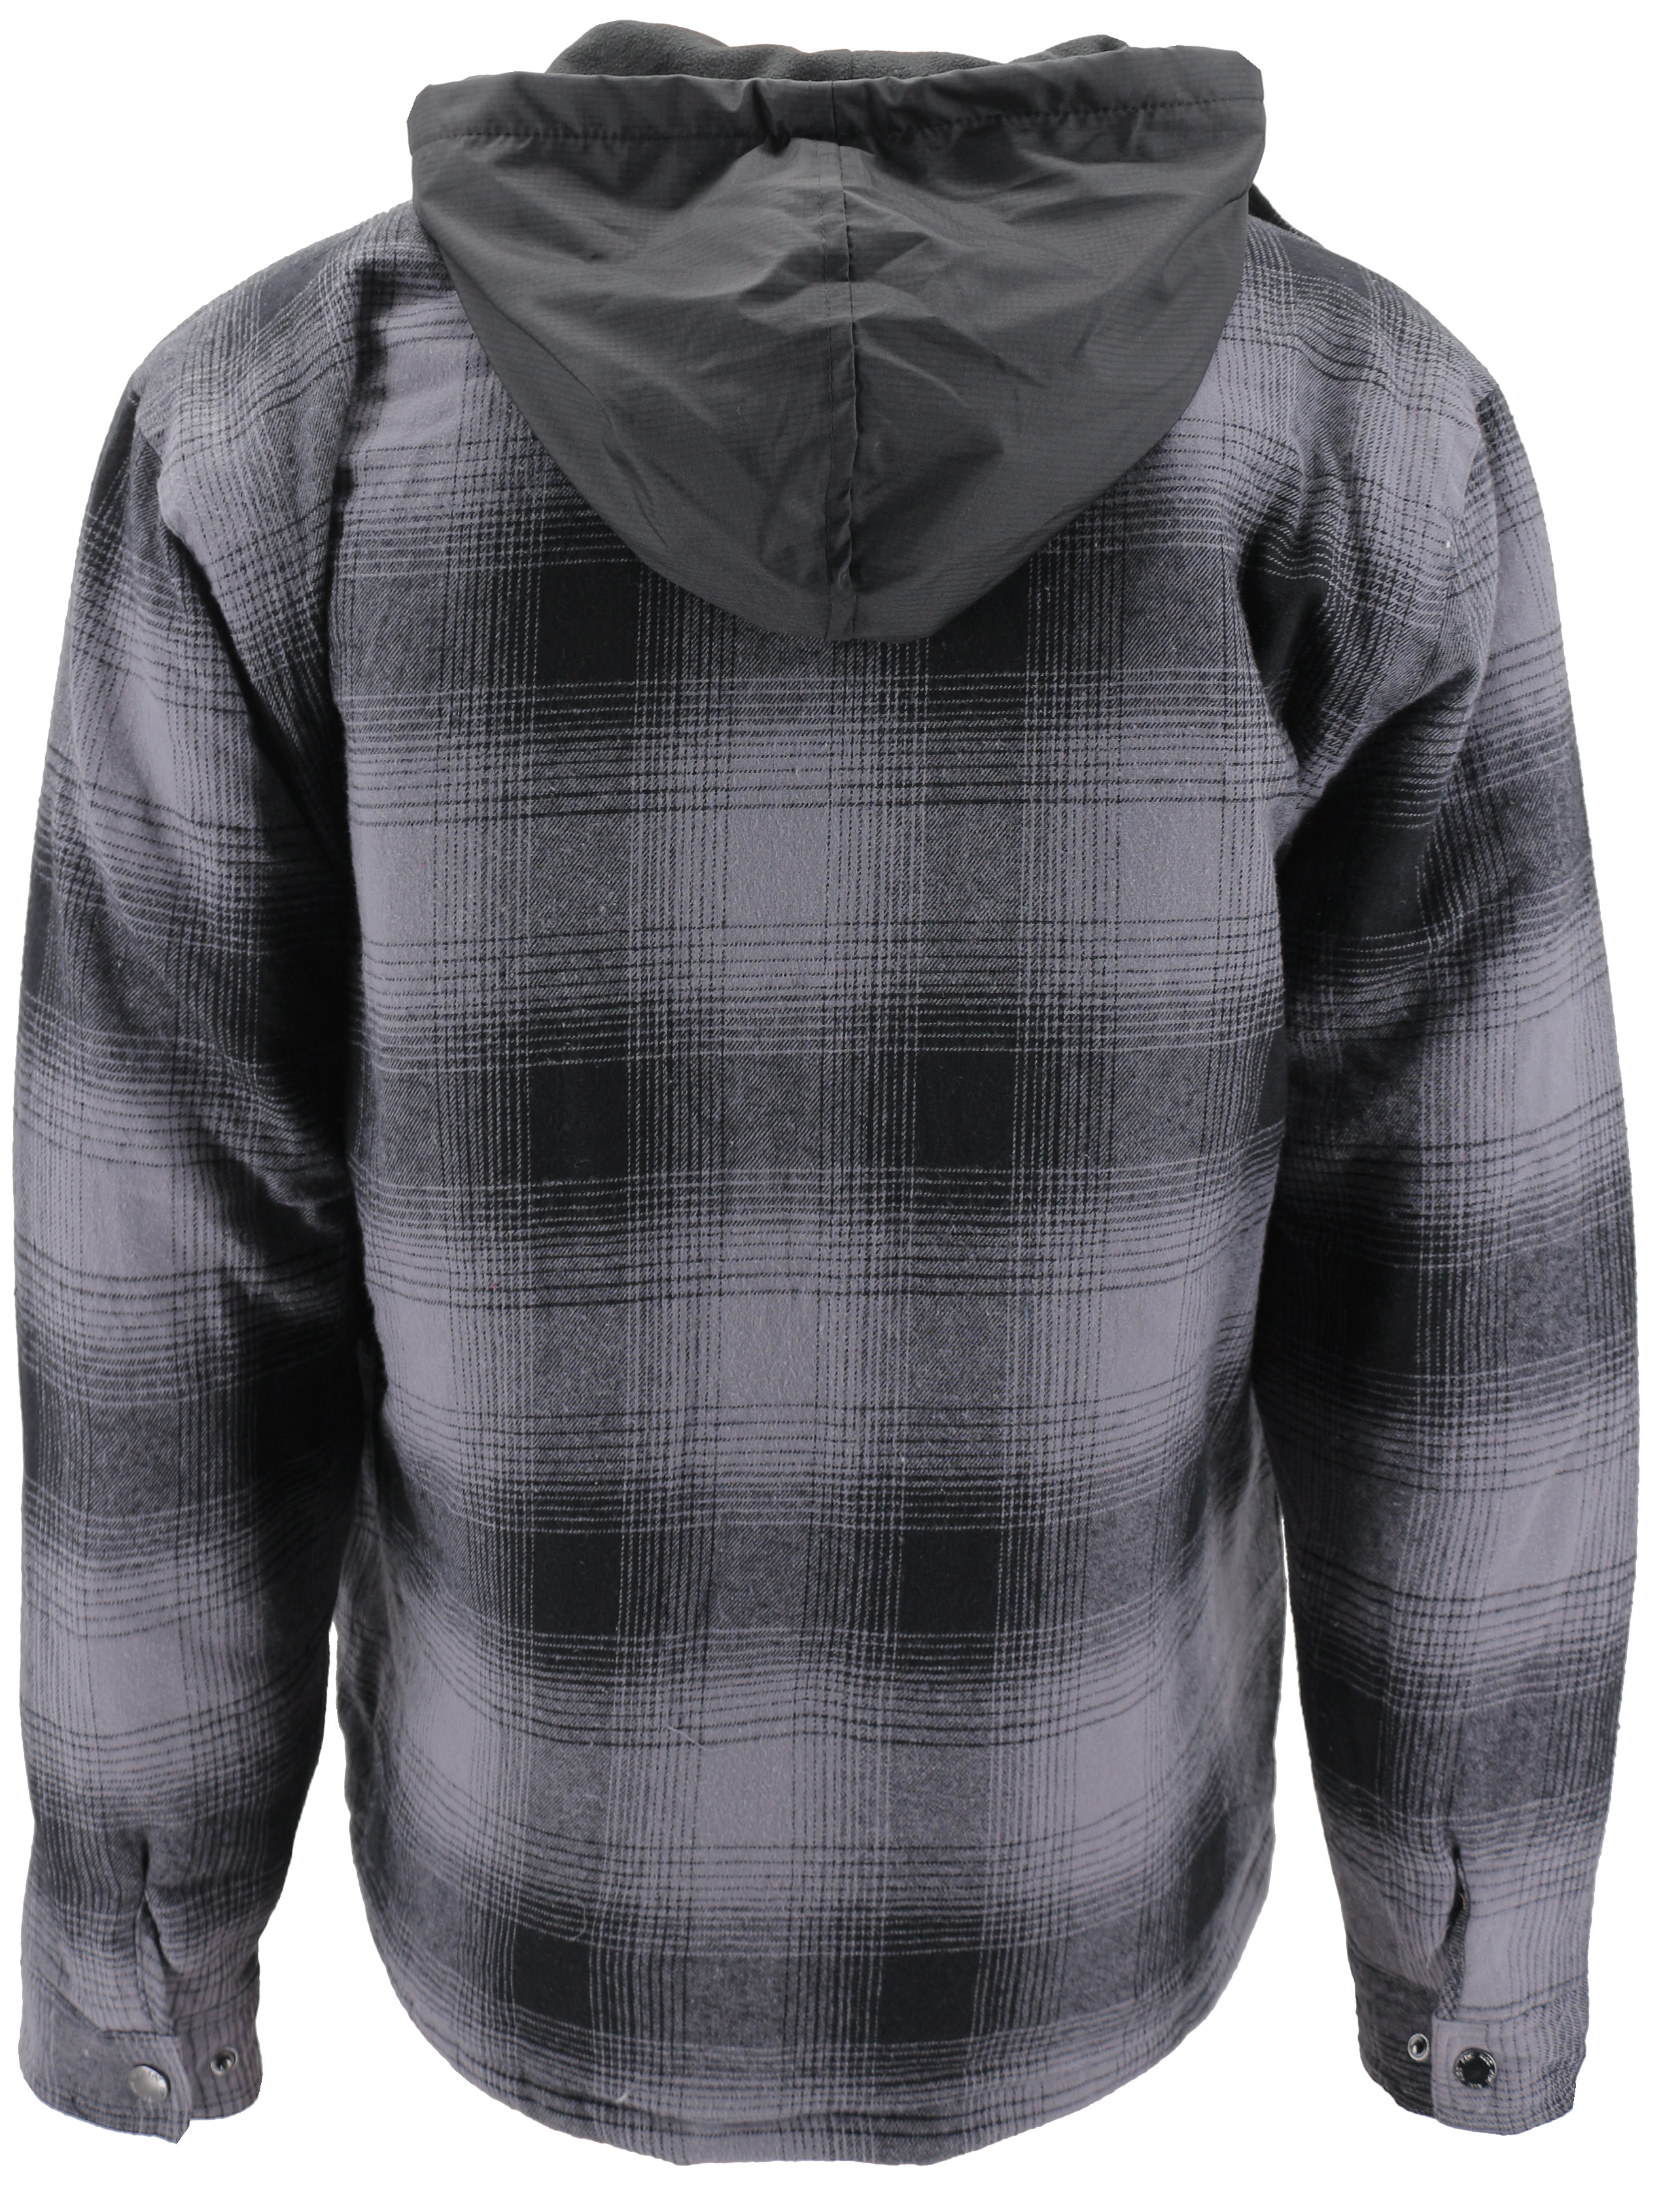 vkwear-Men-039-s-Quilted-Lined-Cotton-Plaid-Flannel-Layered-Zip-Up-Hoodie-Jacket thumbnail 10